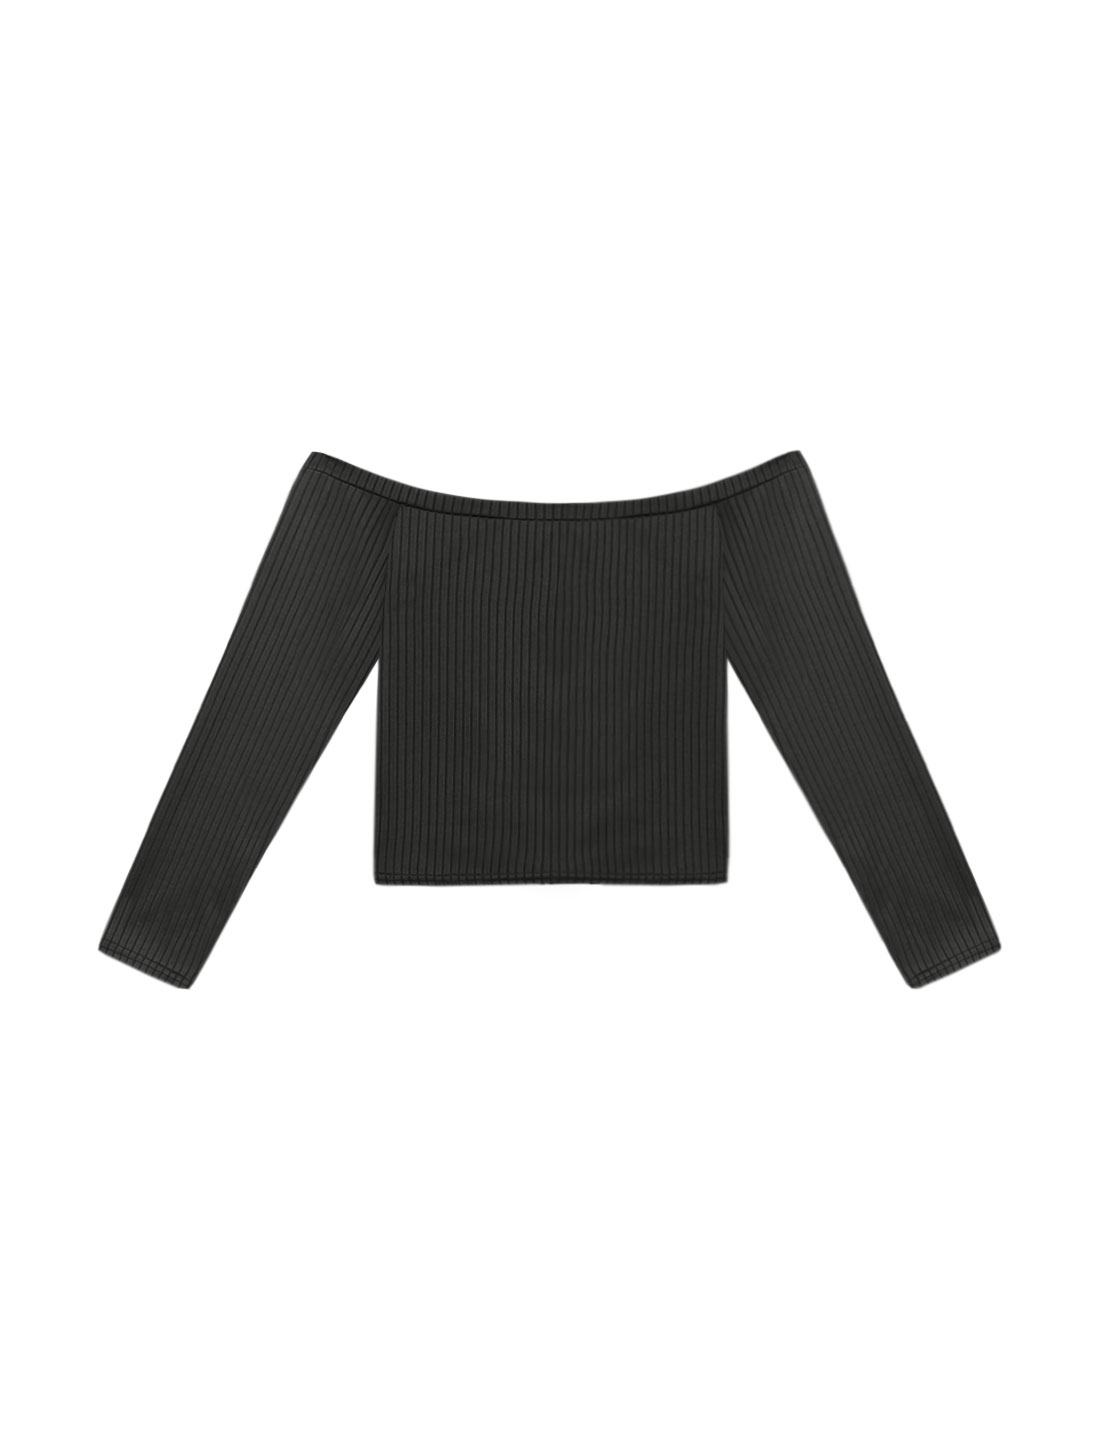 Women Off the Shoulder Long Sleeves Slim Fit Crop Top Black M